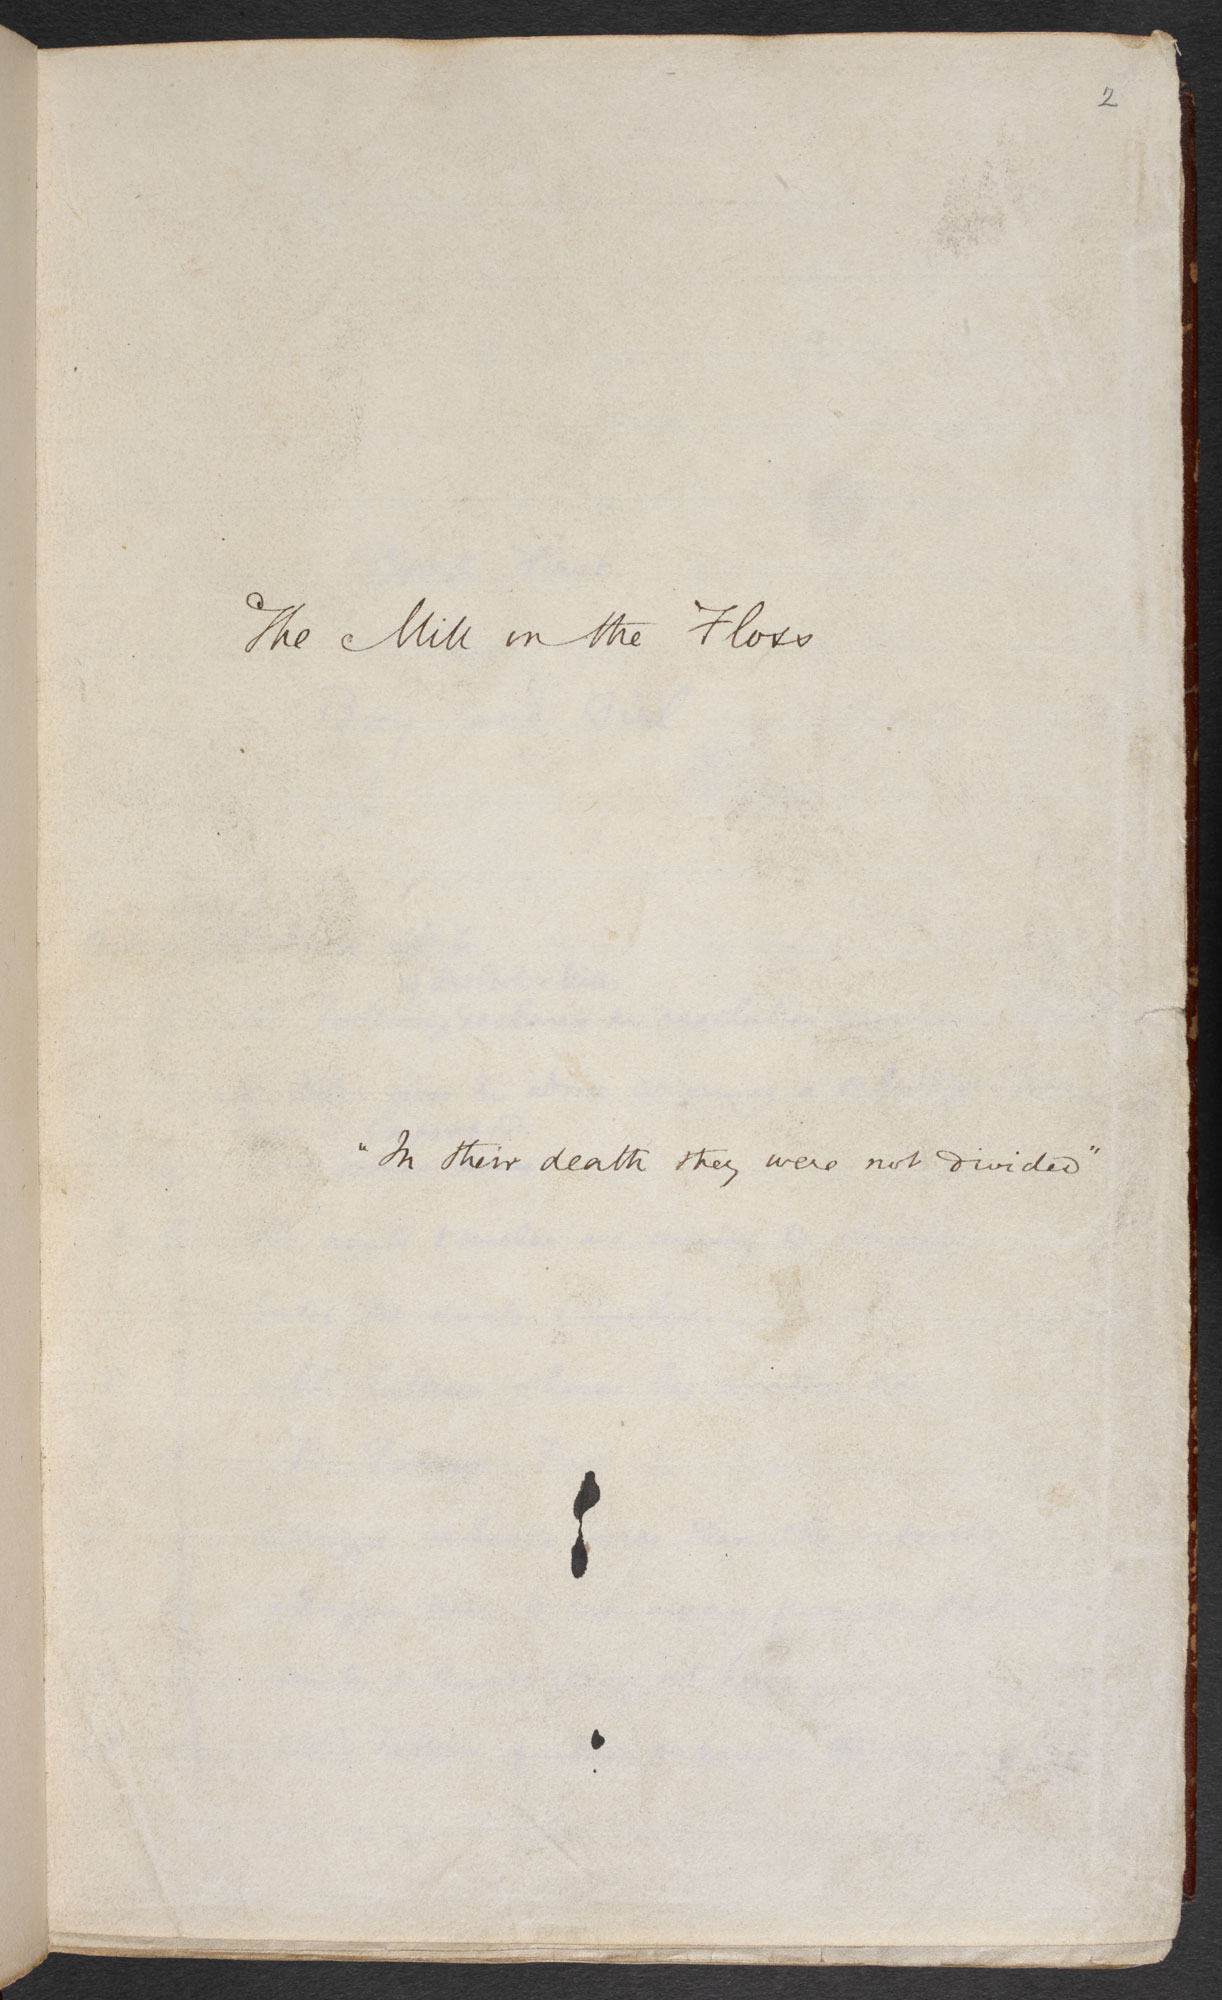 Manuscript of The Mill on the Floss by George Eliot